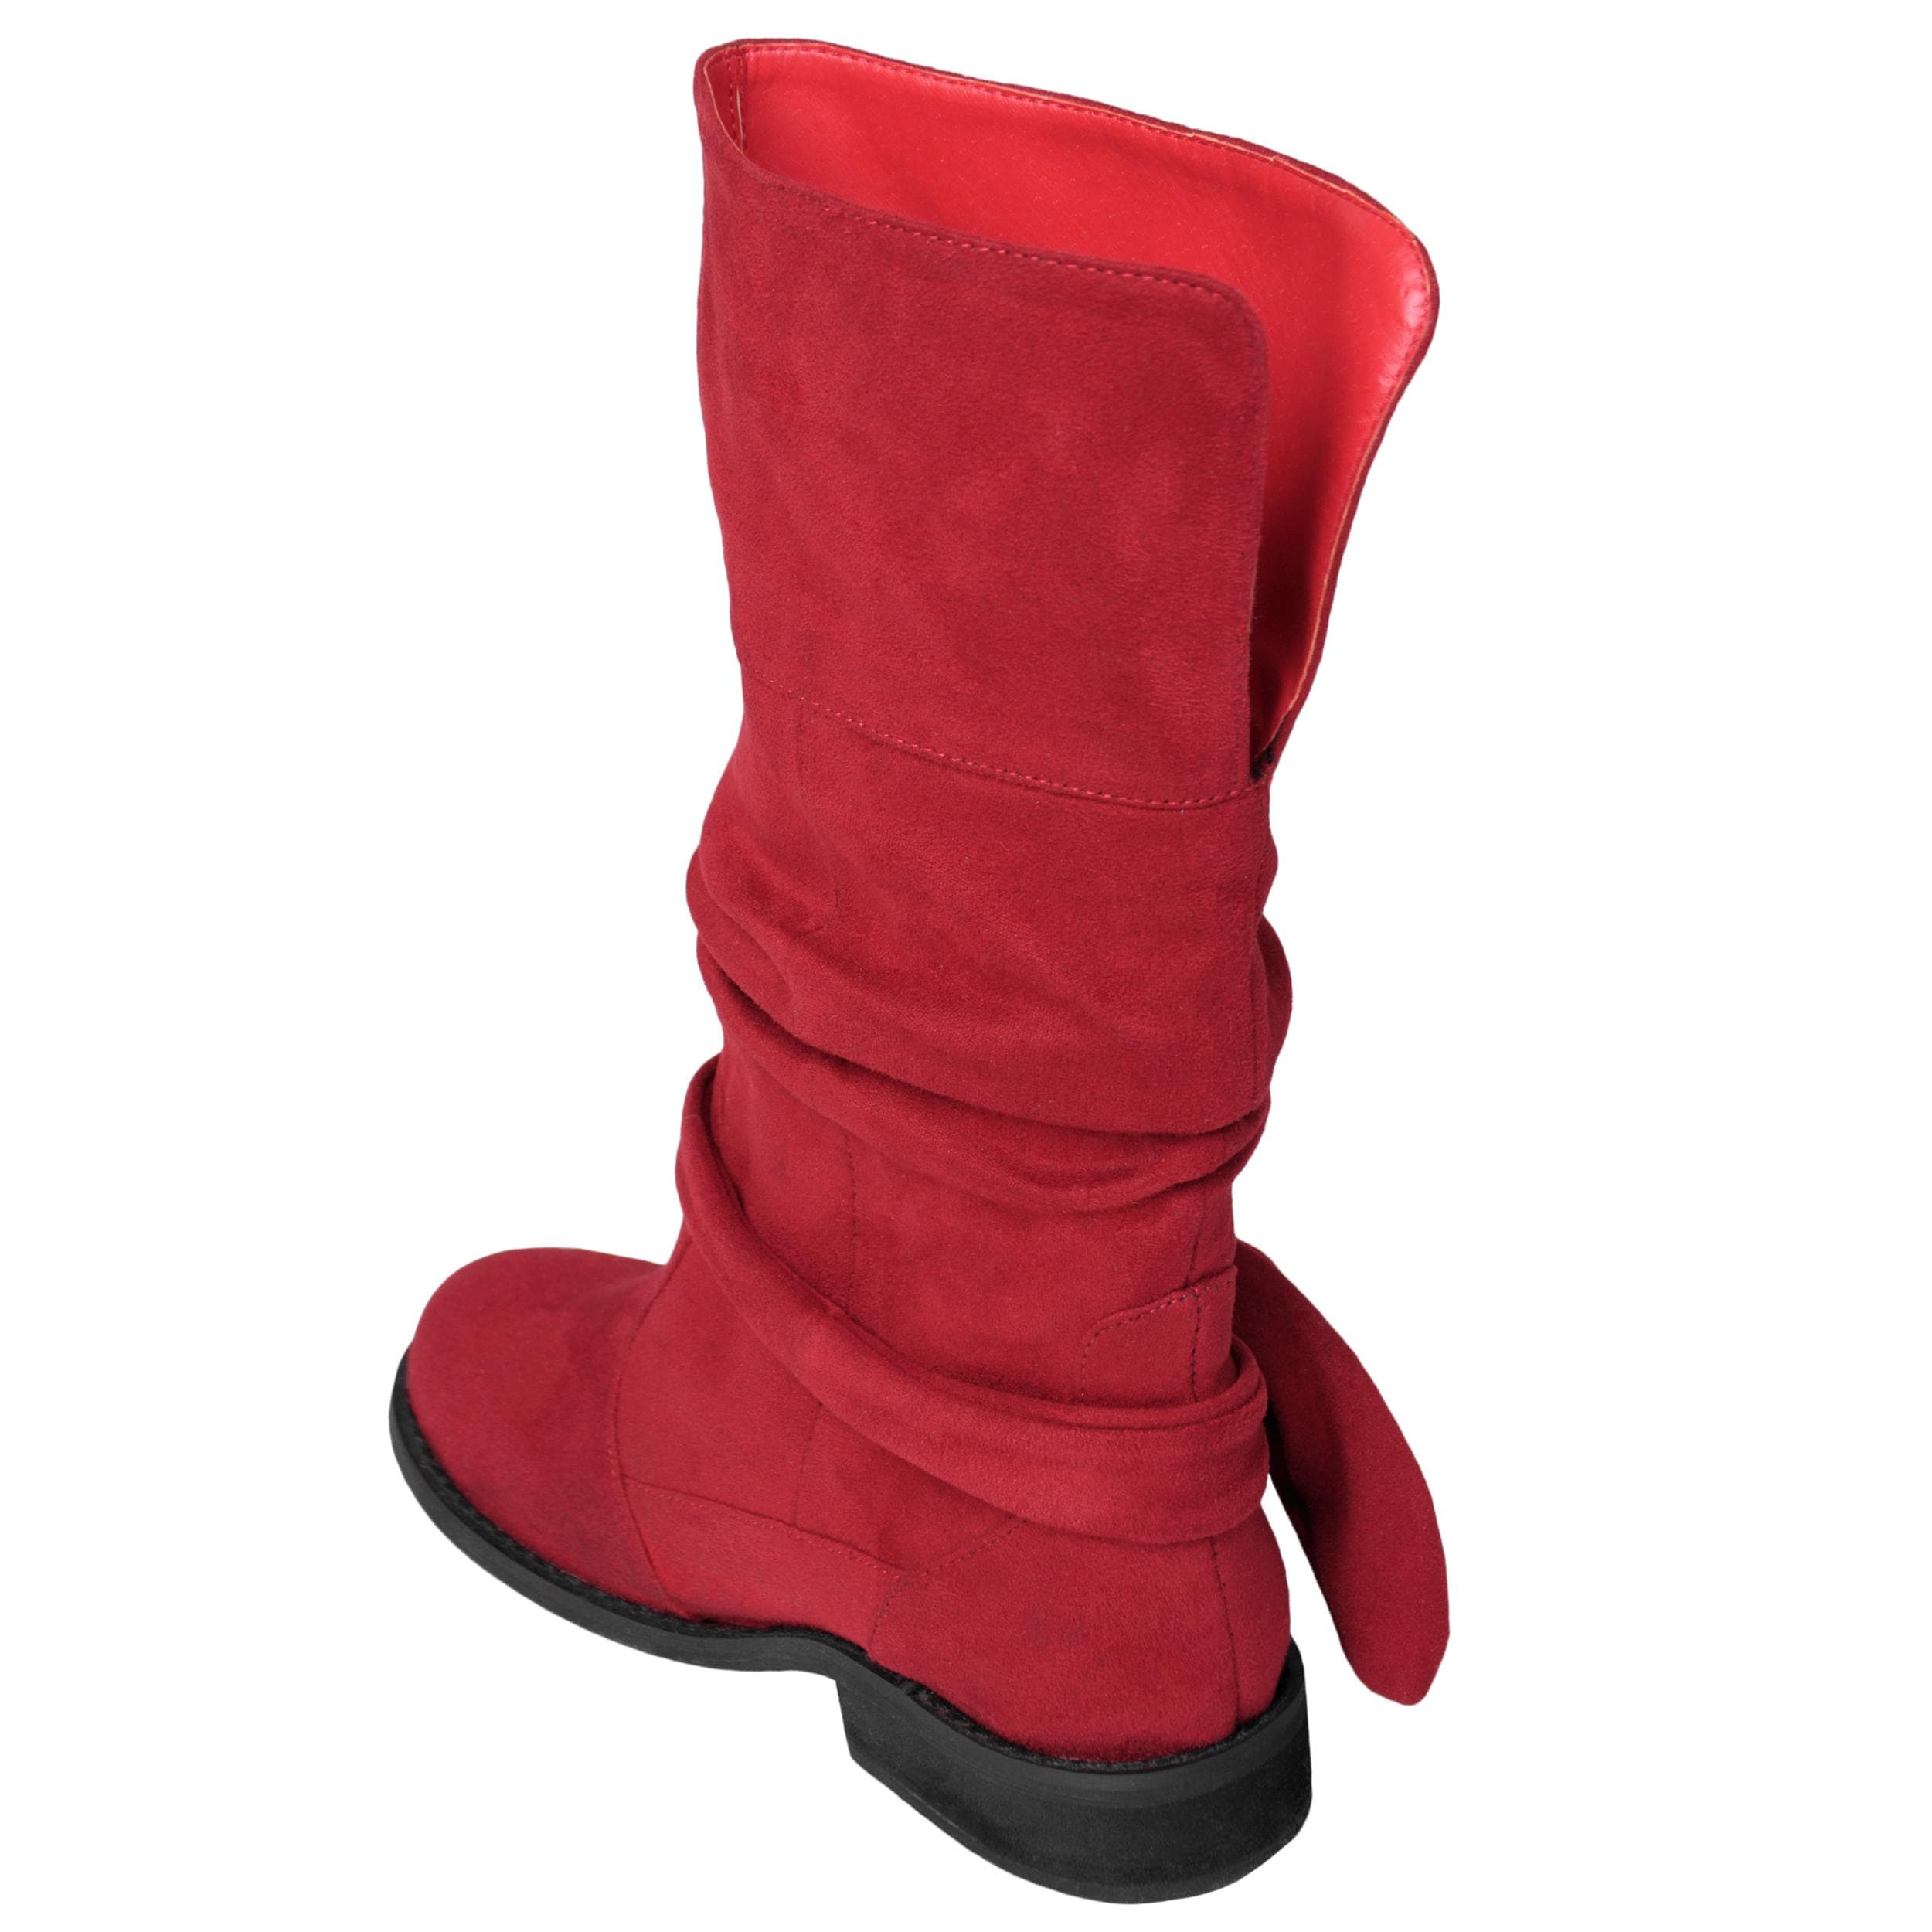 Two Lips Brand Girl's 'TooBootleg' Knot Detail Slouchy Mid-calf Boot